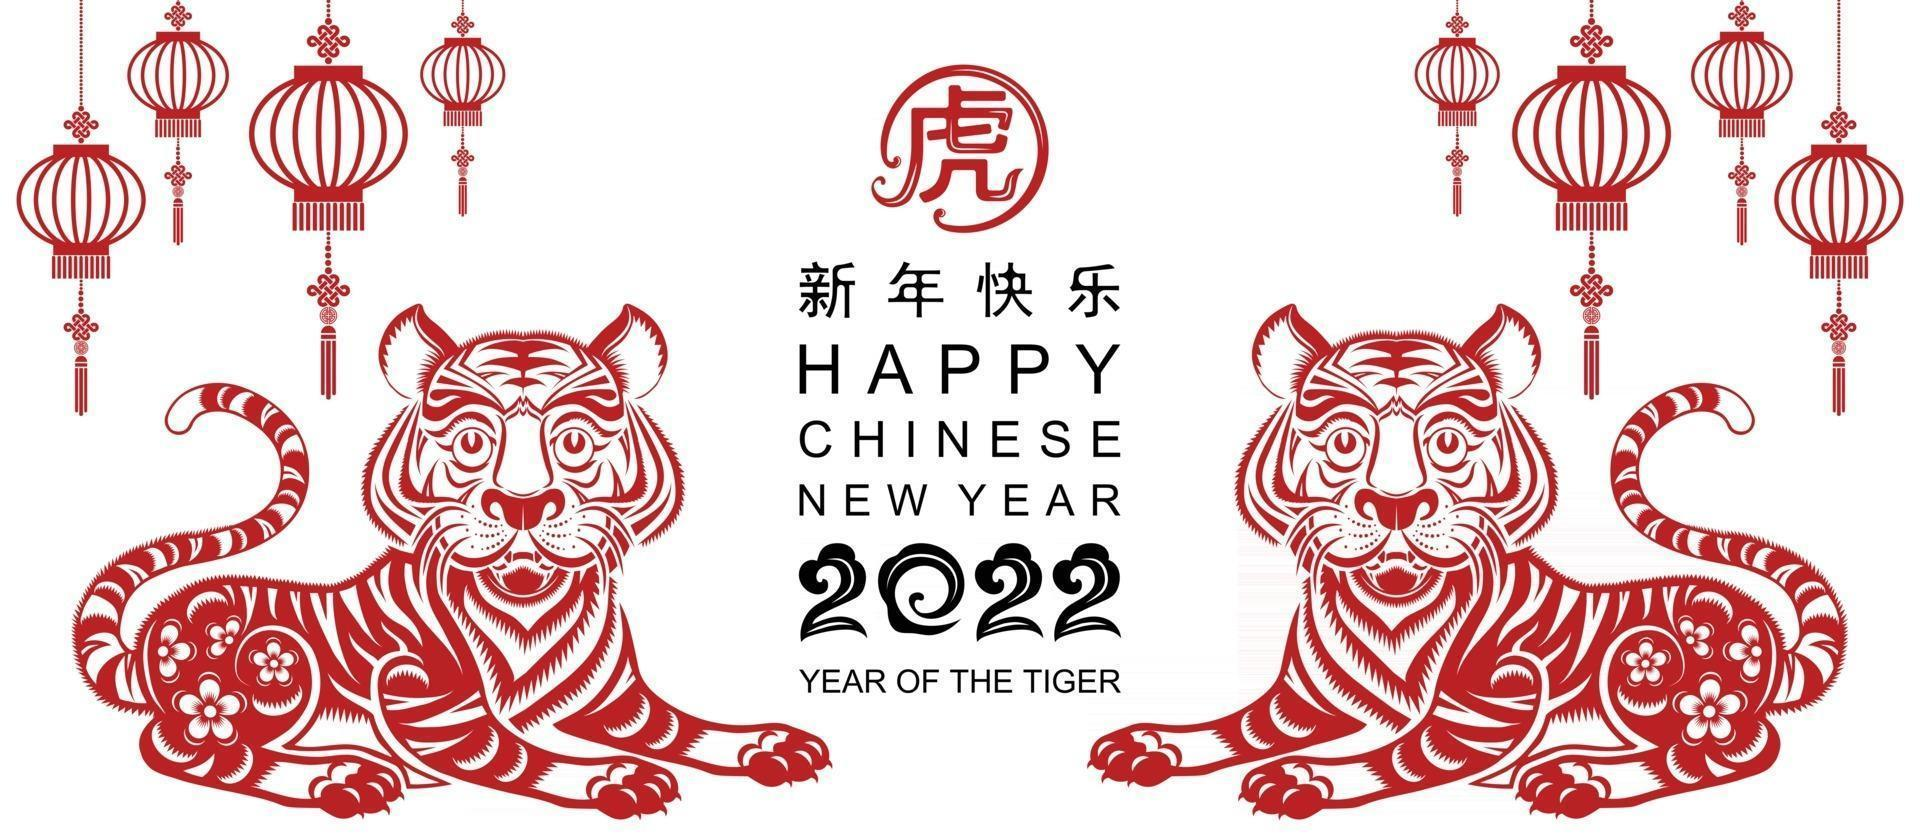 Chinese new year 2022 year of the tiger vector